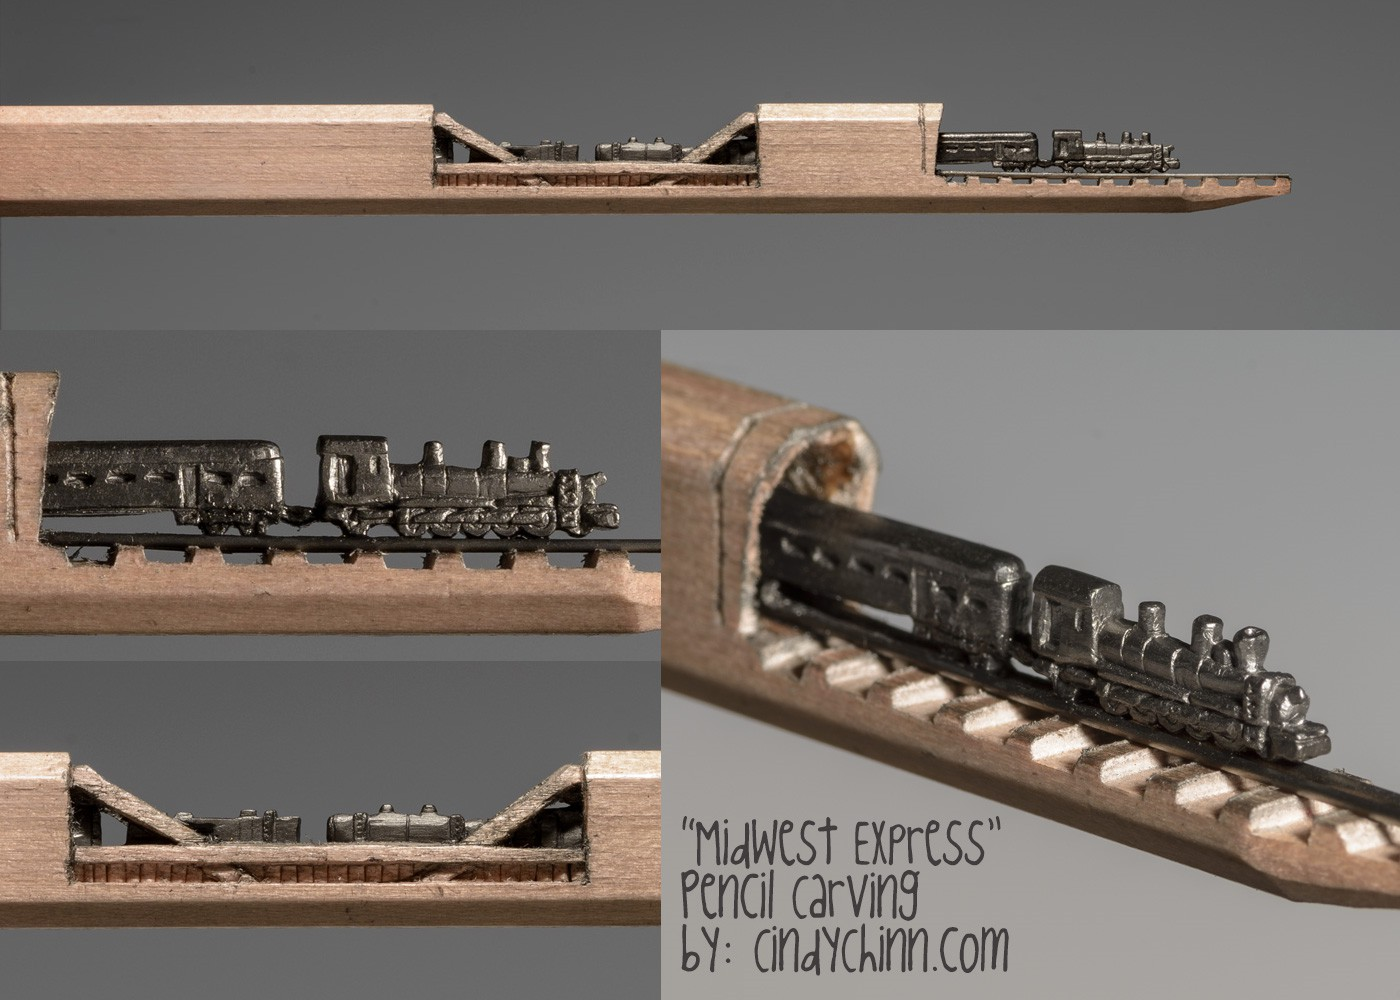 12-Midwest-Express-Train-Cindy-Chinn-Miniature-Carvings-of-Pencil-Graphite-www-designstack-co